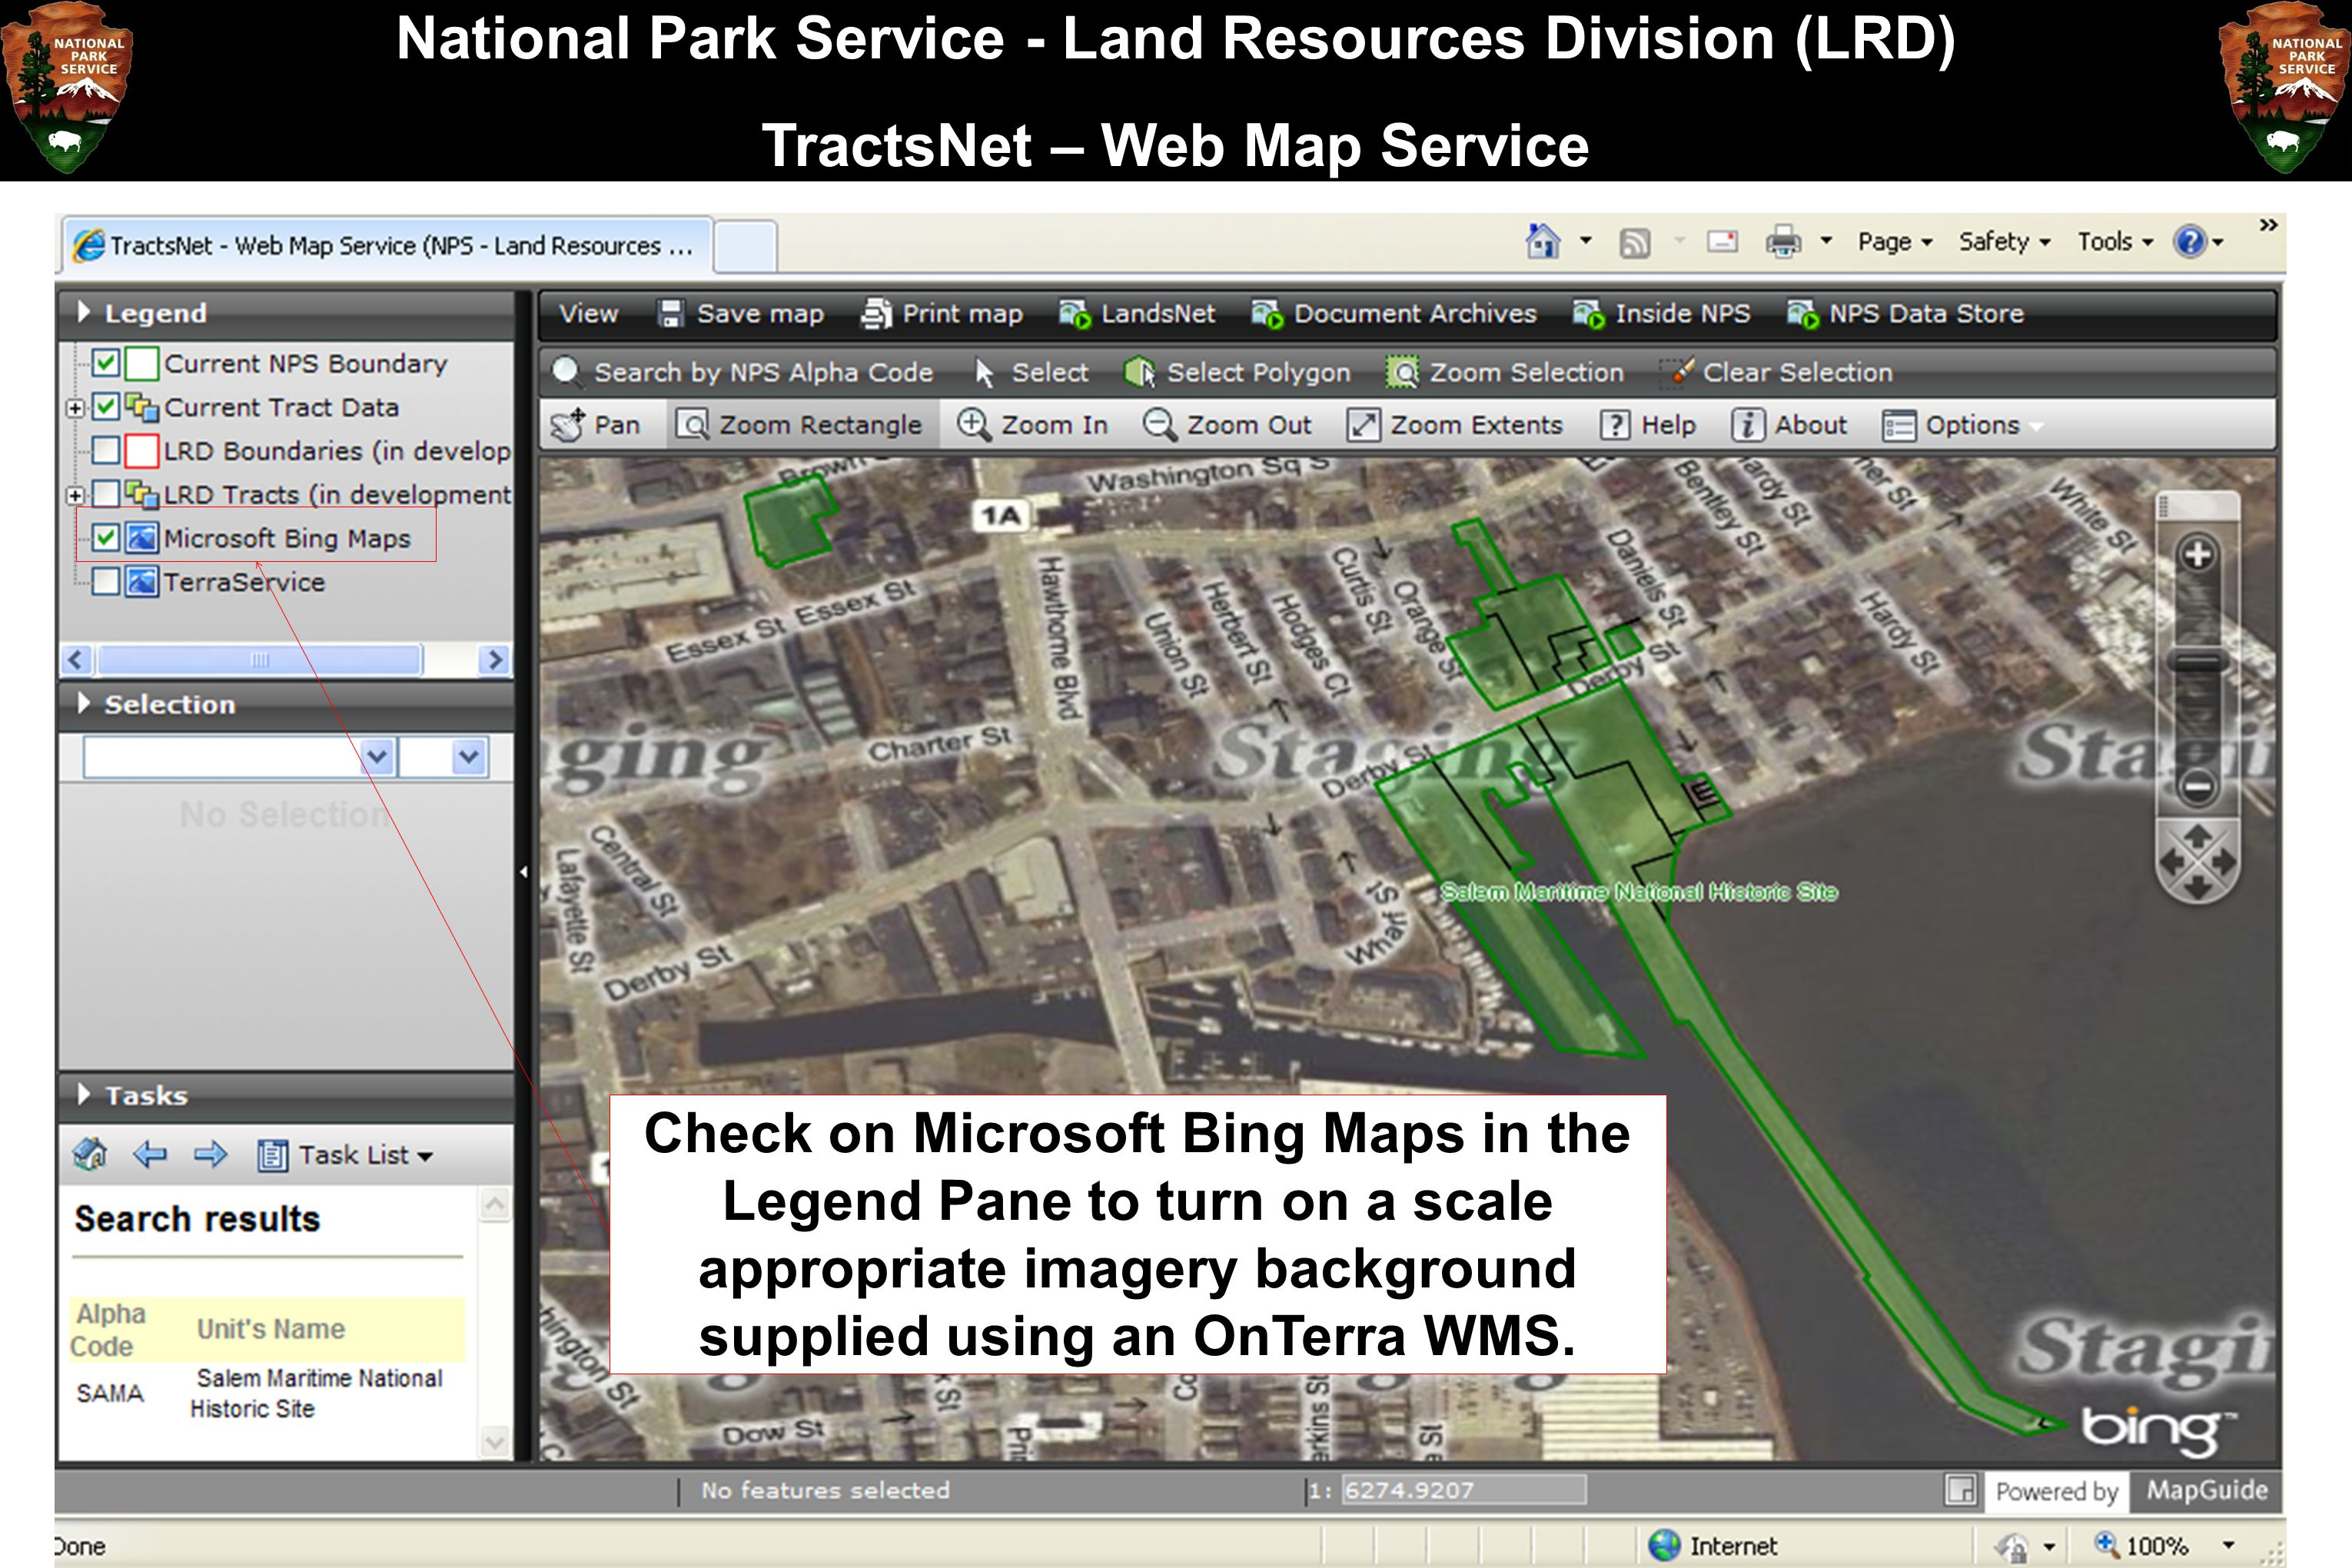 National Park Service - Land Resources Division (LRD) TractsNet – Web Map Service Check on Microsoft Bing Maps in the Legend Pane to turn on a scale a